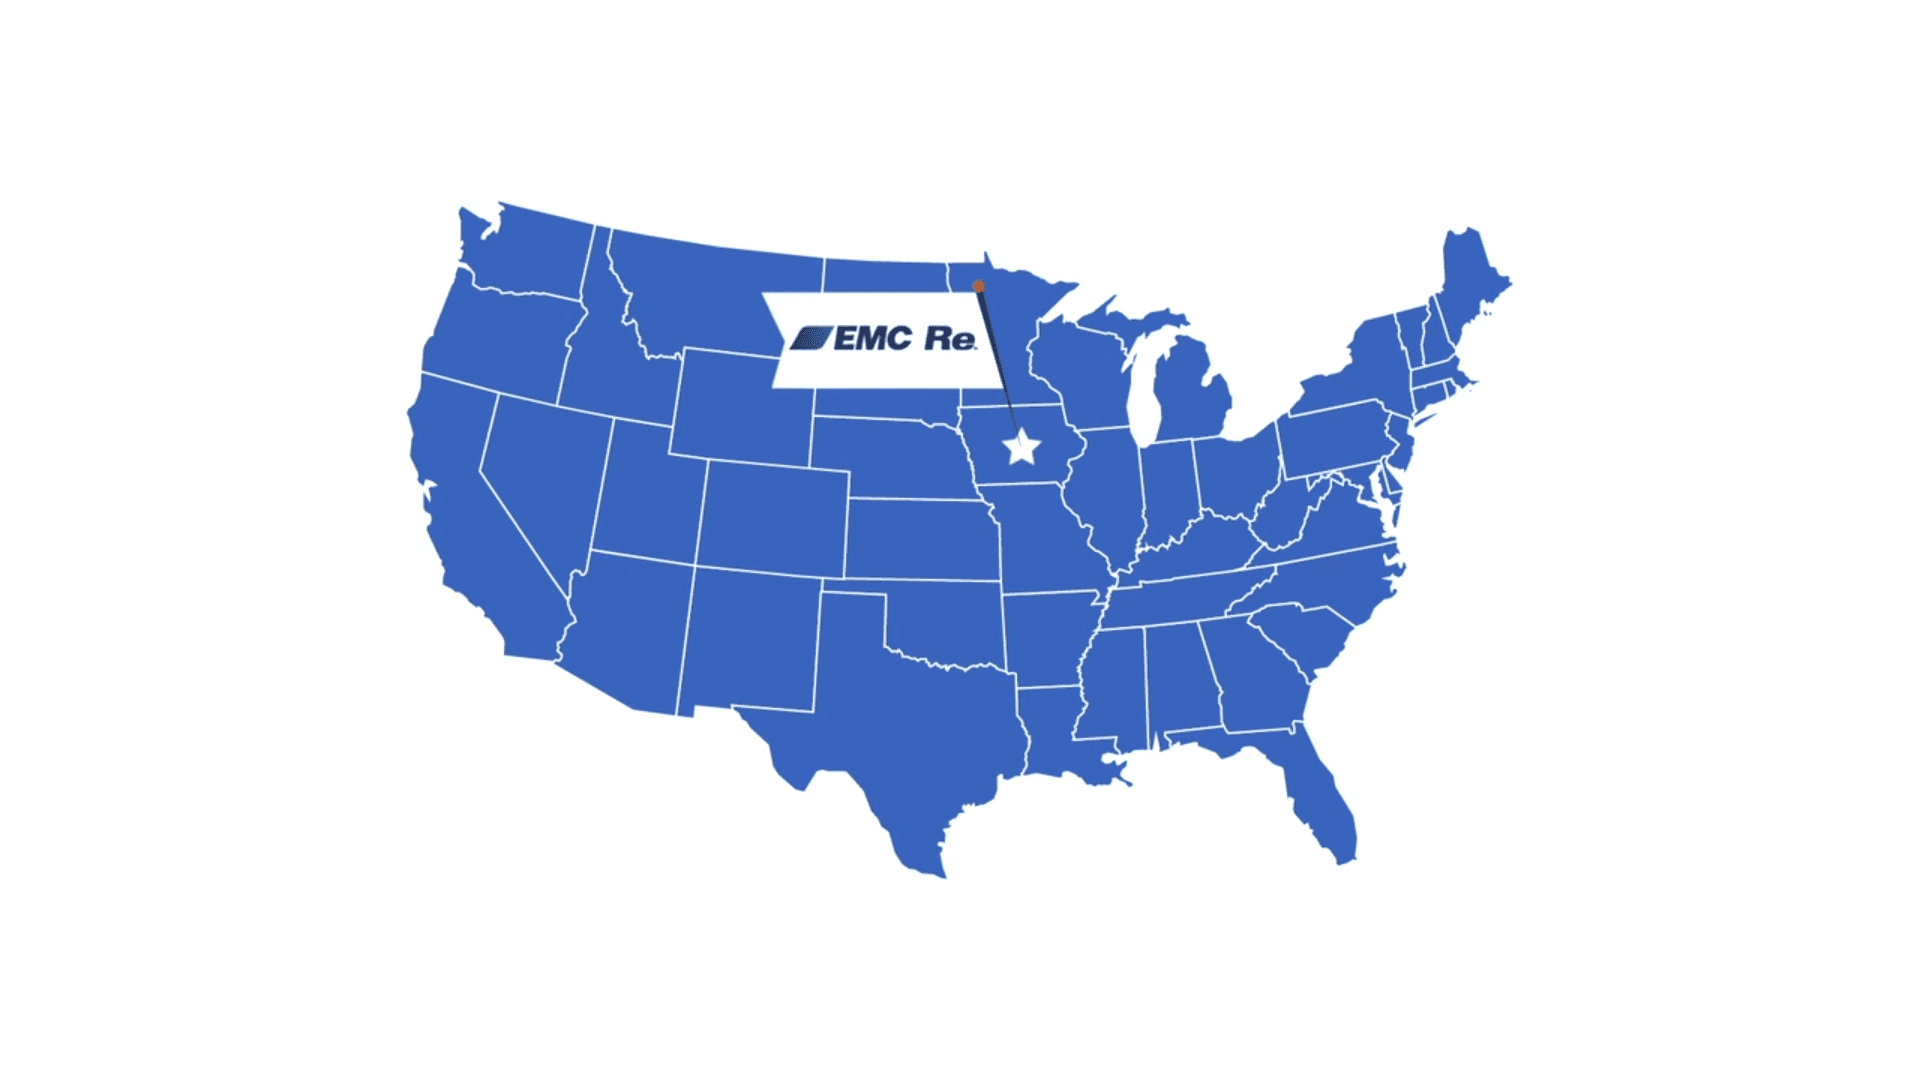 Map of USA with EMC Re home office marked with a Star